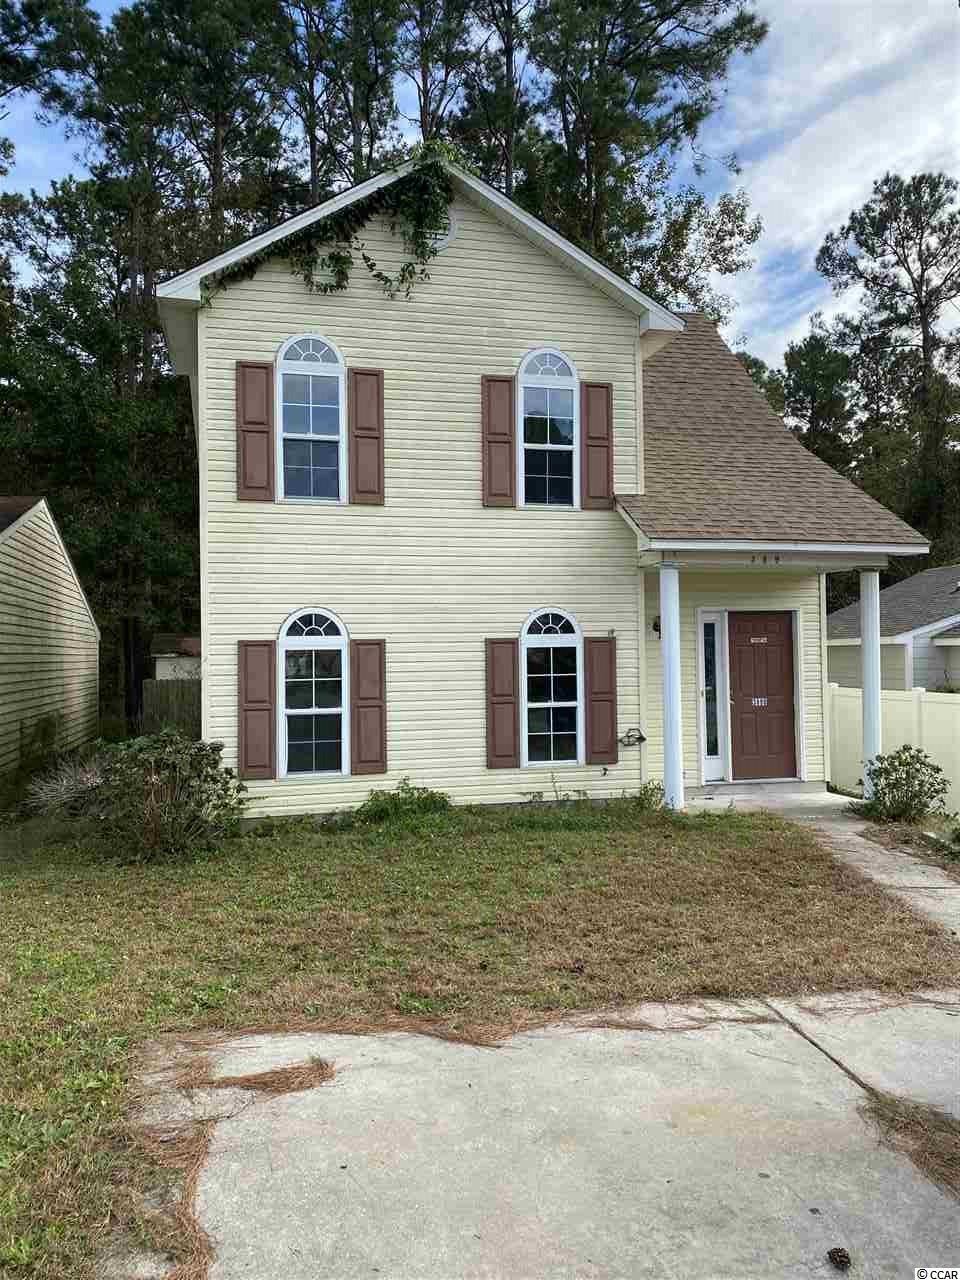 Located in the Pinebrook community in Little River, 10 minutes from the beach! This two-story home is in a fantastic location and has so much potential. There's a full kitchen, fireplace, 3 bedrooms, 2 full bathrooms, fenced in yard, deck, and a storage shed to play with! Pinebrook is a quaint community with a pool located only about 10 minutes from the ocean with plenty of restaurants and entertainment in between. North Myrtle Beach, Cherry Grove, Conway, and Highways 90, 17, 31, and 9 are all easily accessible from this home. This one will not last - take a look for yourself TODAY!